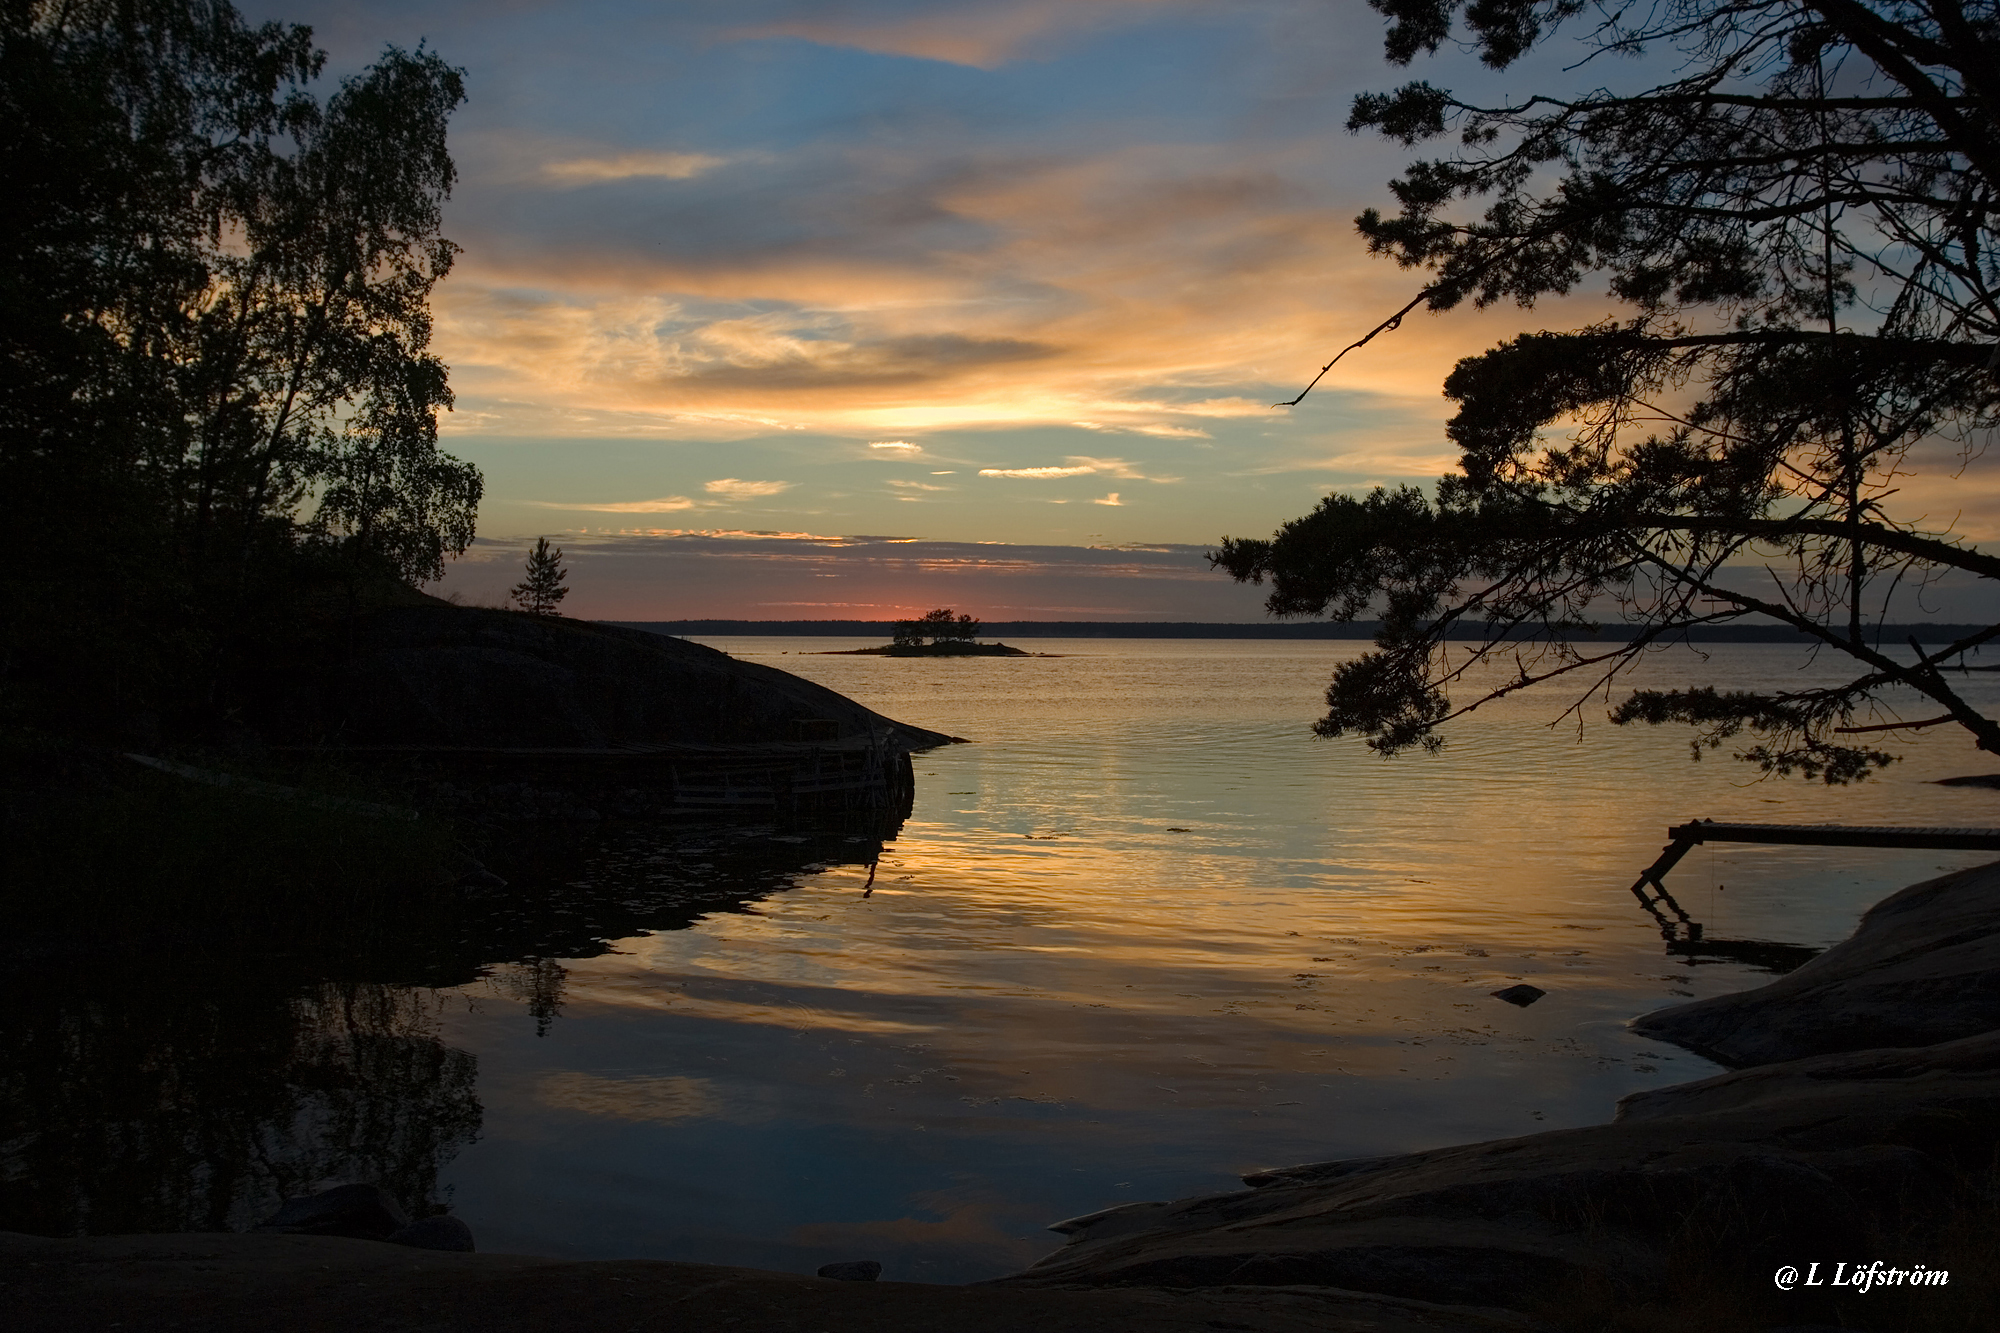 Landscapes-Sunset in Archipelago